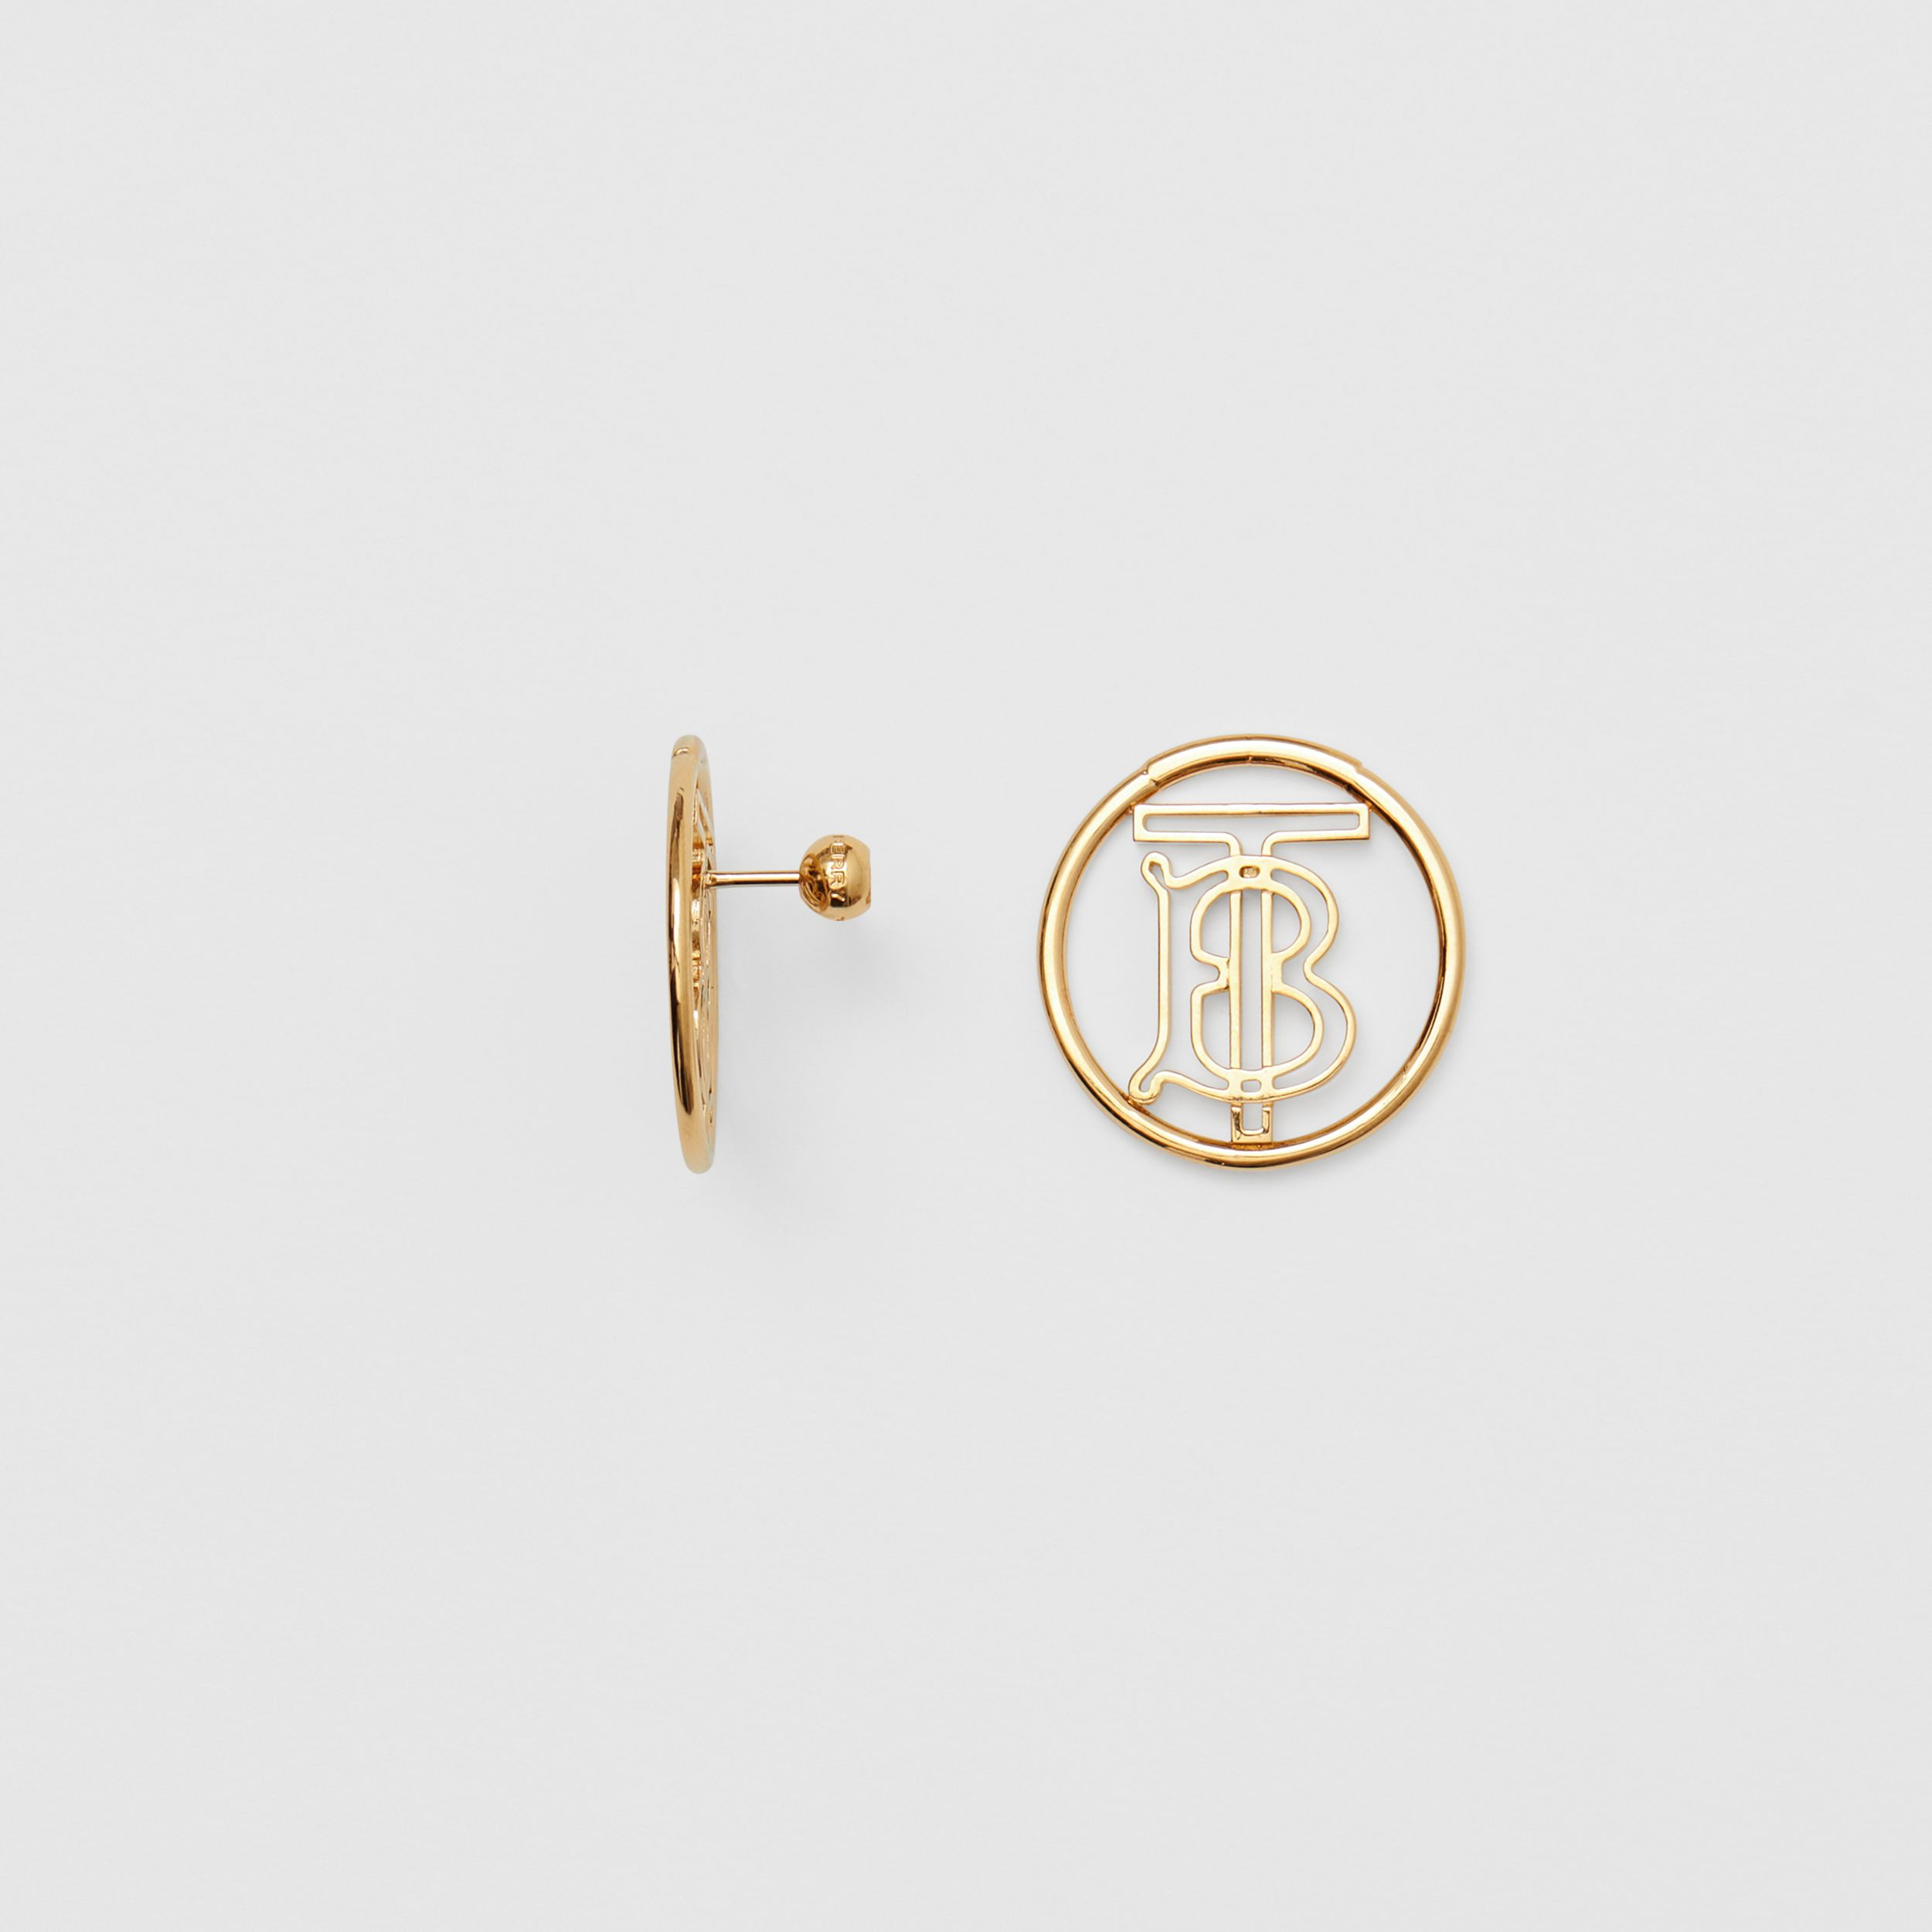 Gold-plated Monogram Motif Earrings in Light - Women | Burberry - 4